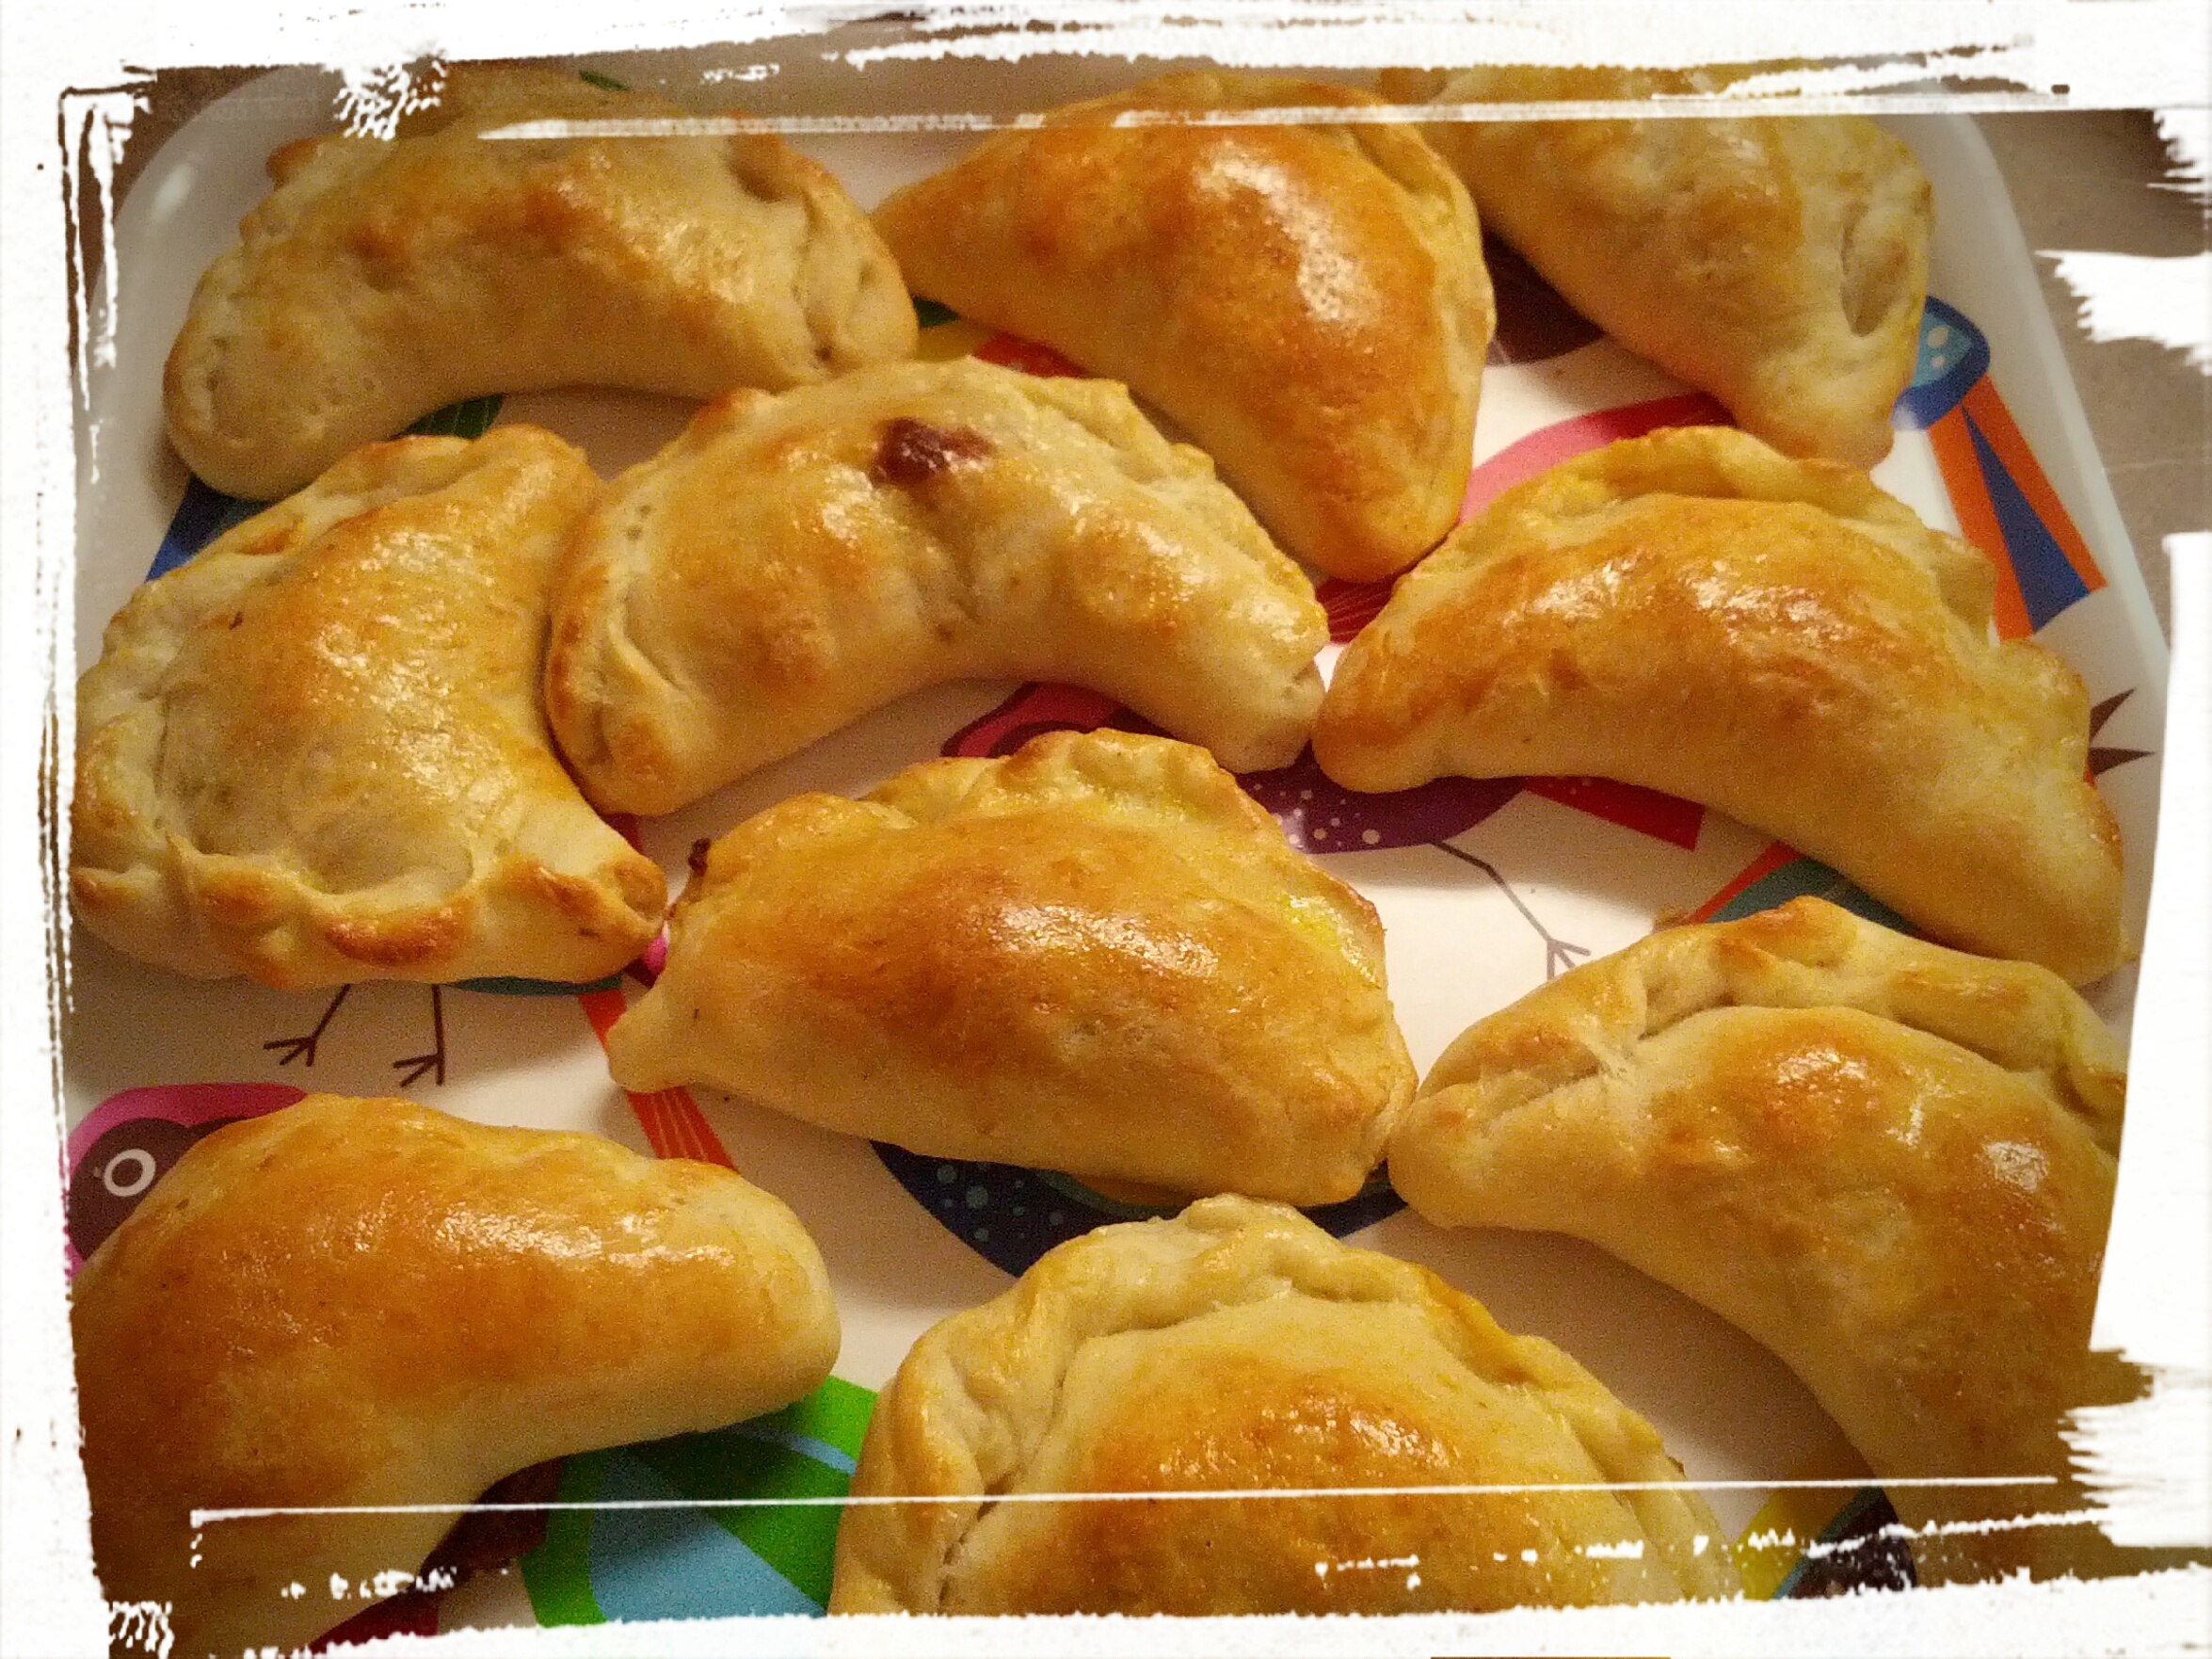 Golden-brown freshly baked empanadillas